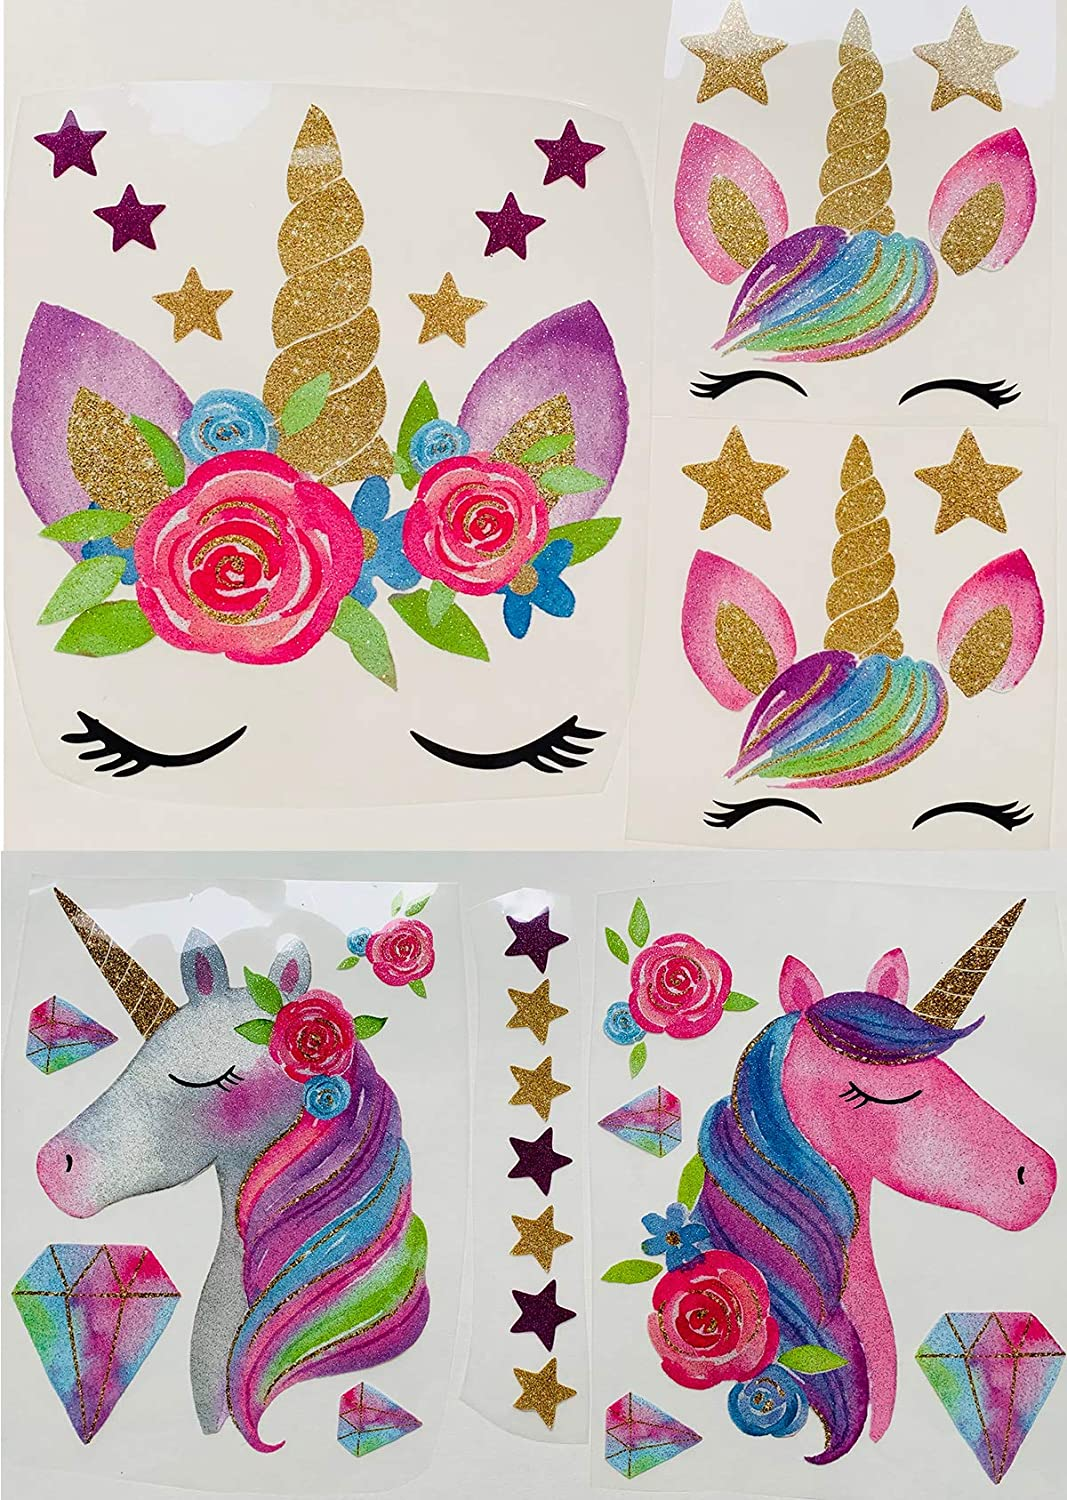 bd48a164c729 Unicorn Iron On Heat Transfer Diamond Iron Transfer Patches Glitter Heat  Transfer Patches Flowers&Star Patches Clothes Patch Appliques Decorate ...